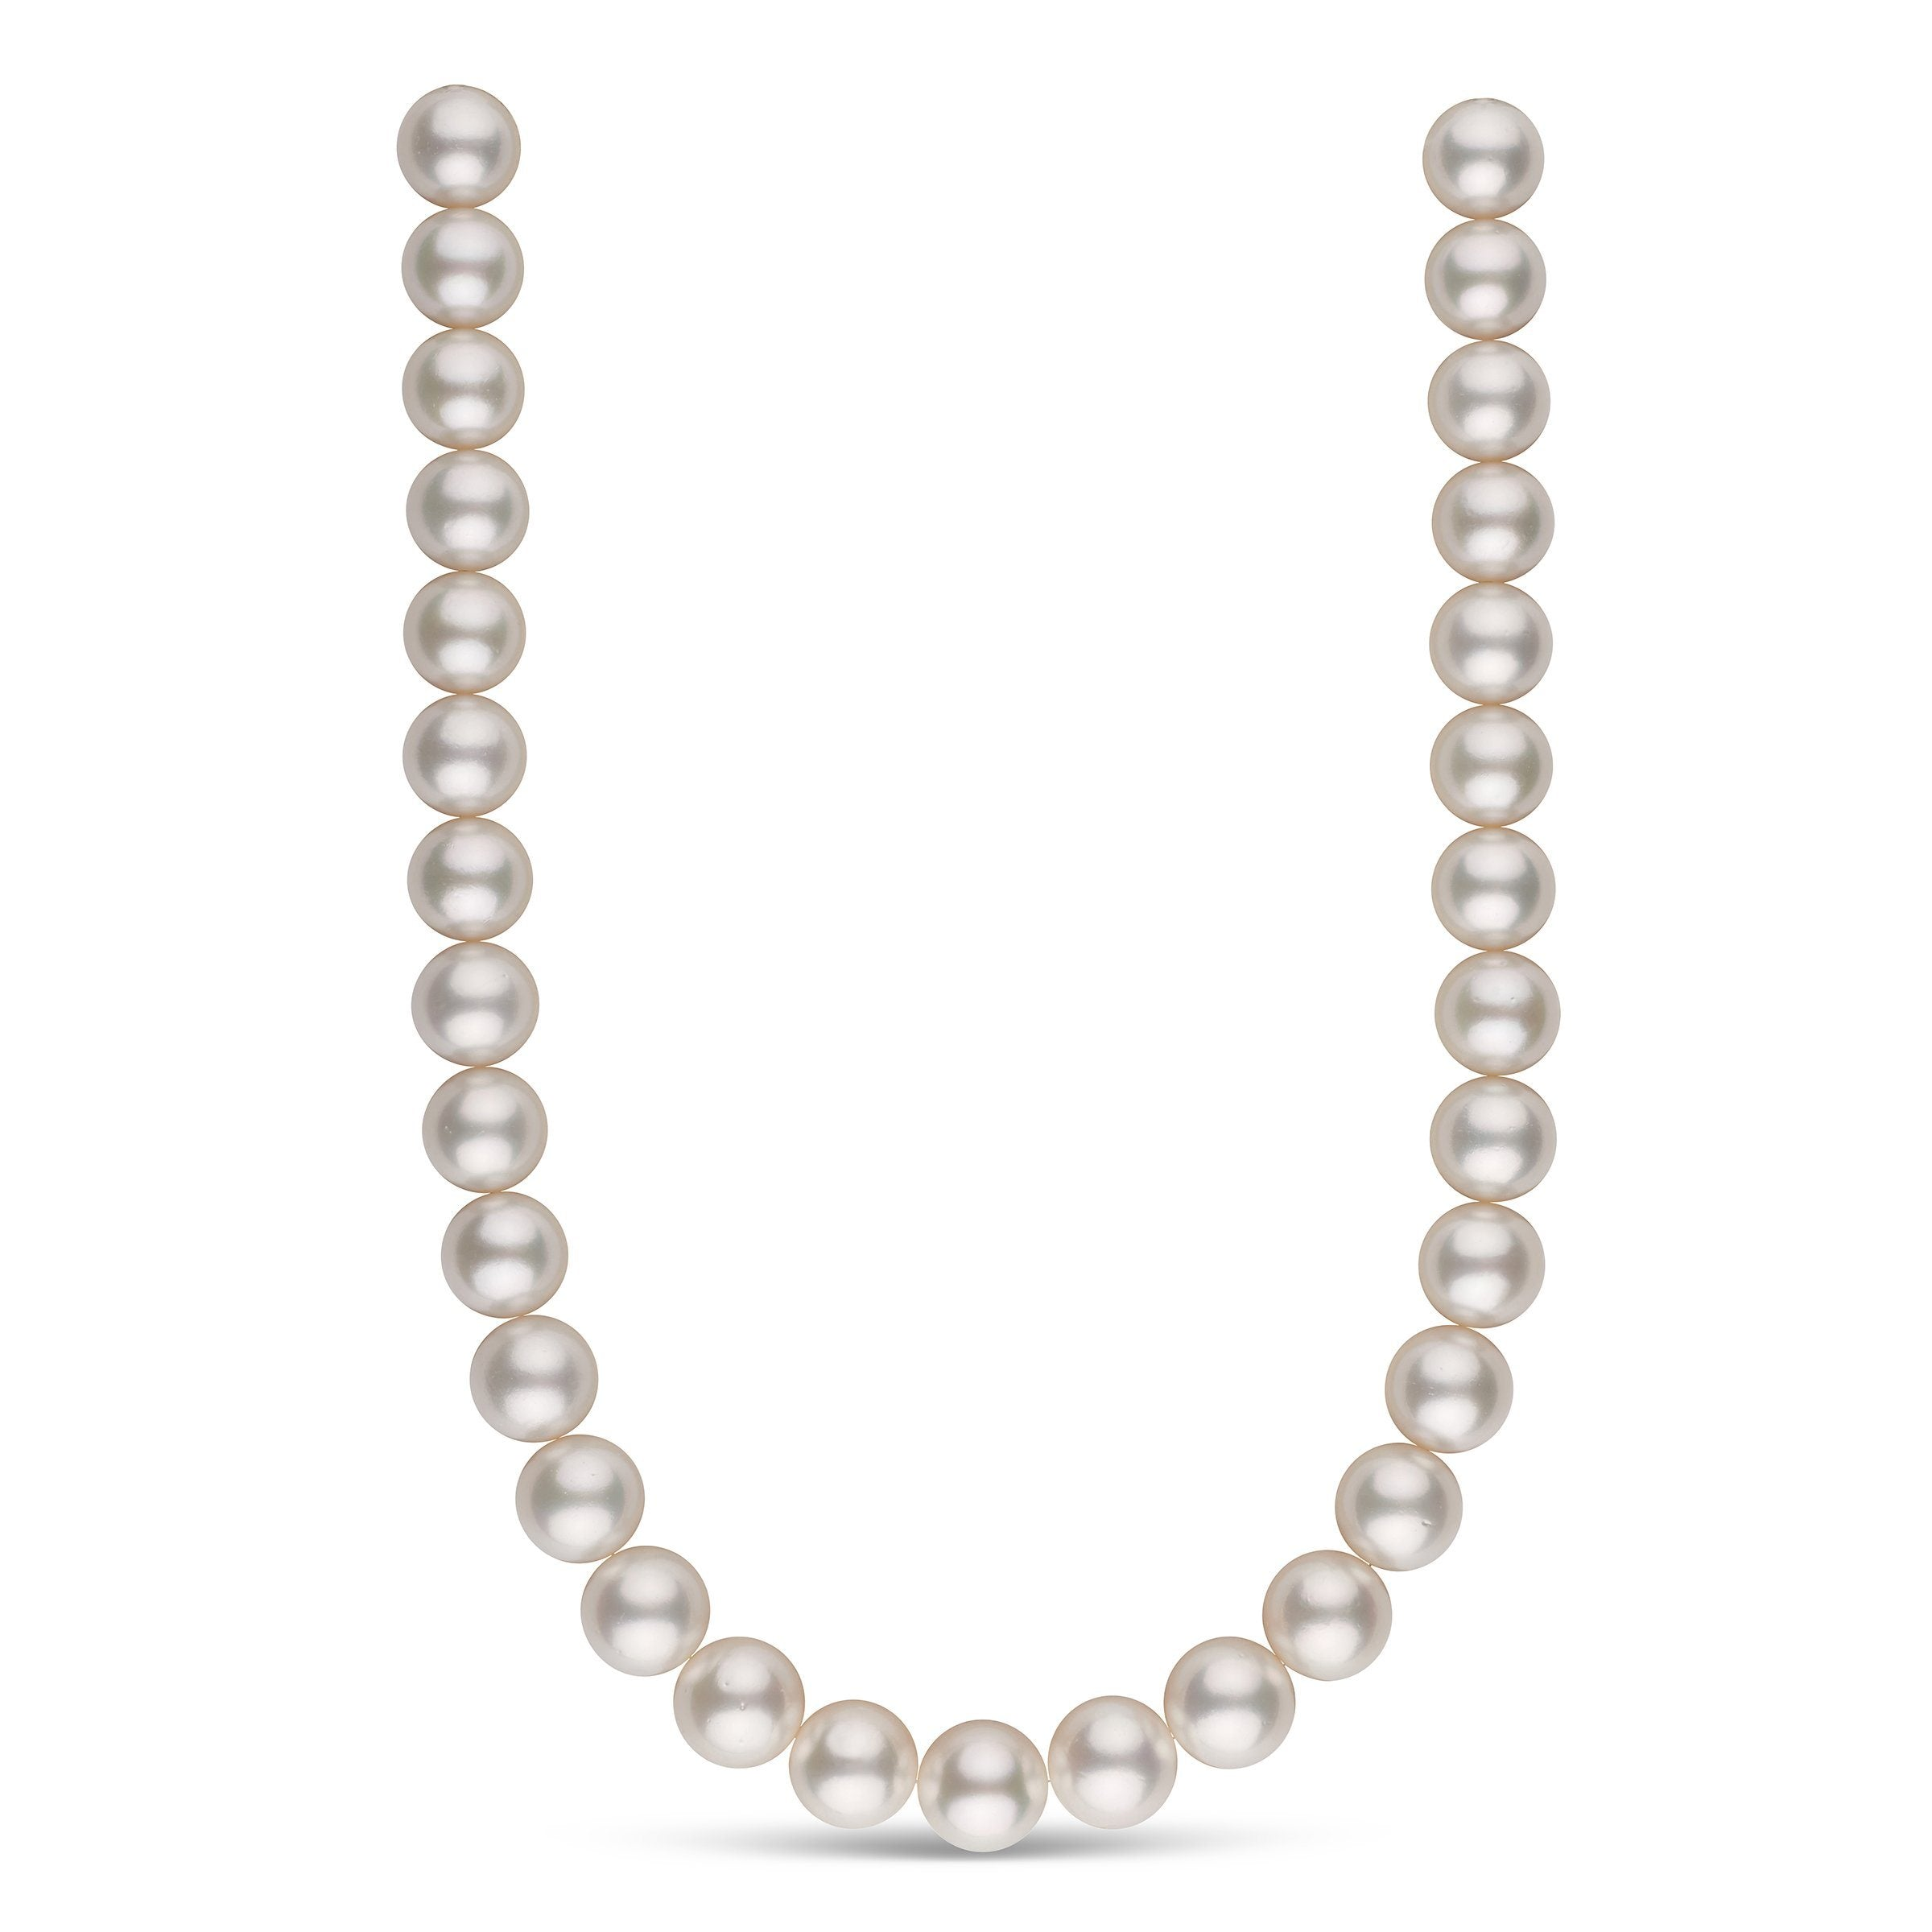 The Fermata White South Sea Pearl Necklace